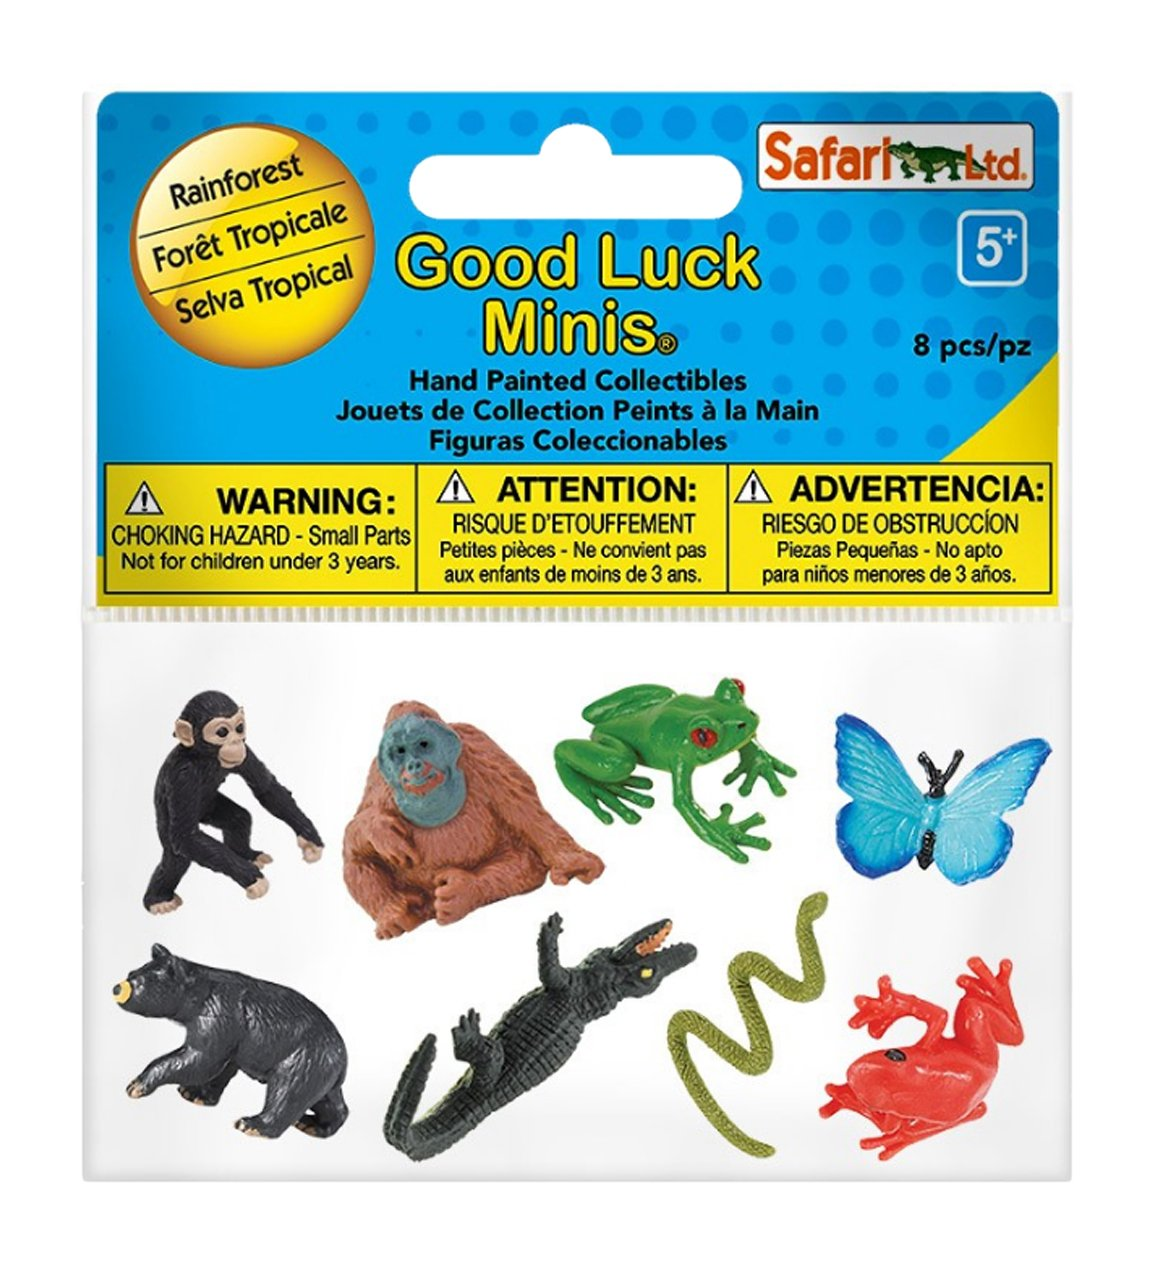 8 Pieces Quality Construction from Phthalate Rainforest Fun Pack Good Luck Minis for Ages 5 and Up Lead and BPA Free Materials Safari Ltd